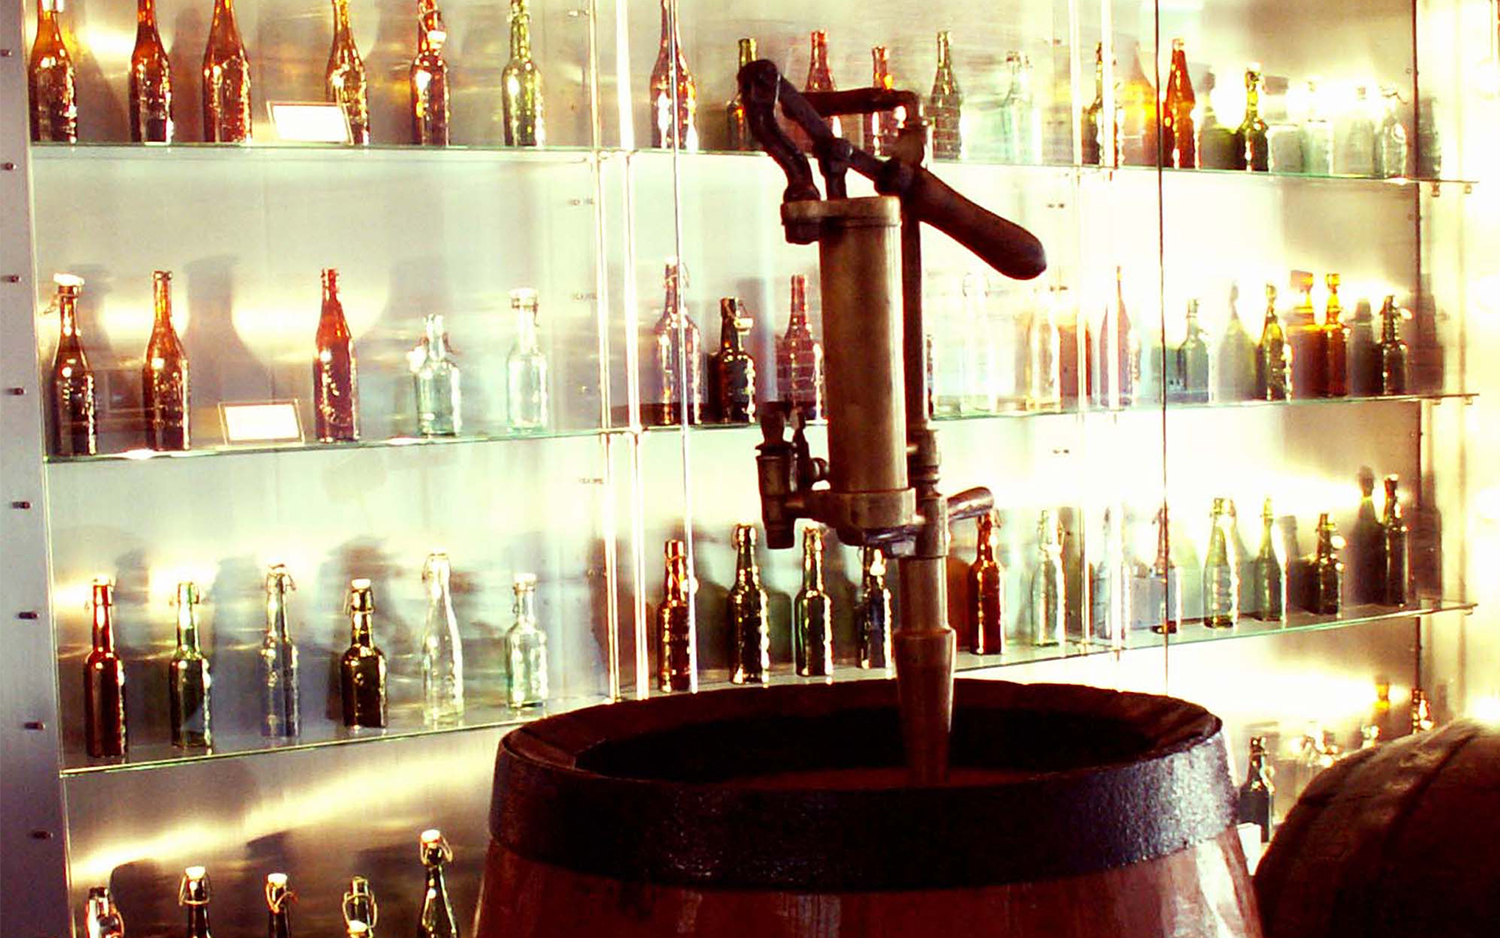 10 Of The World's Most Expensive Beers In The World